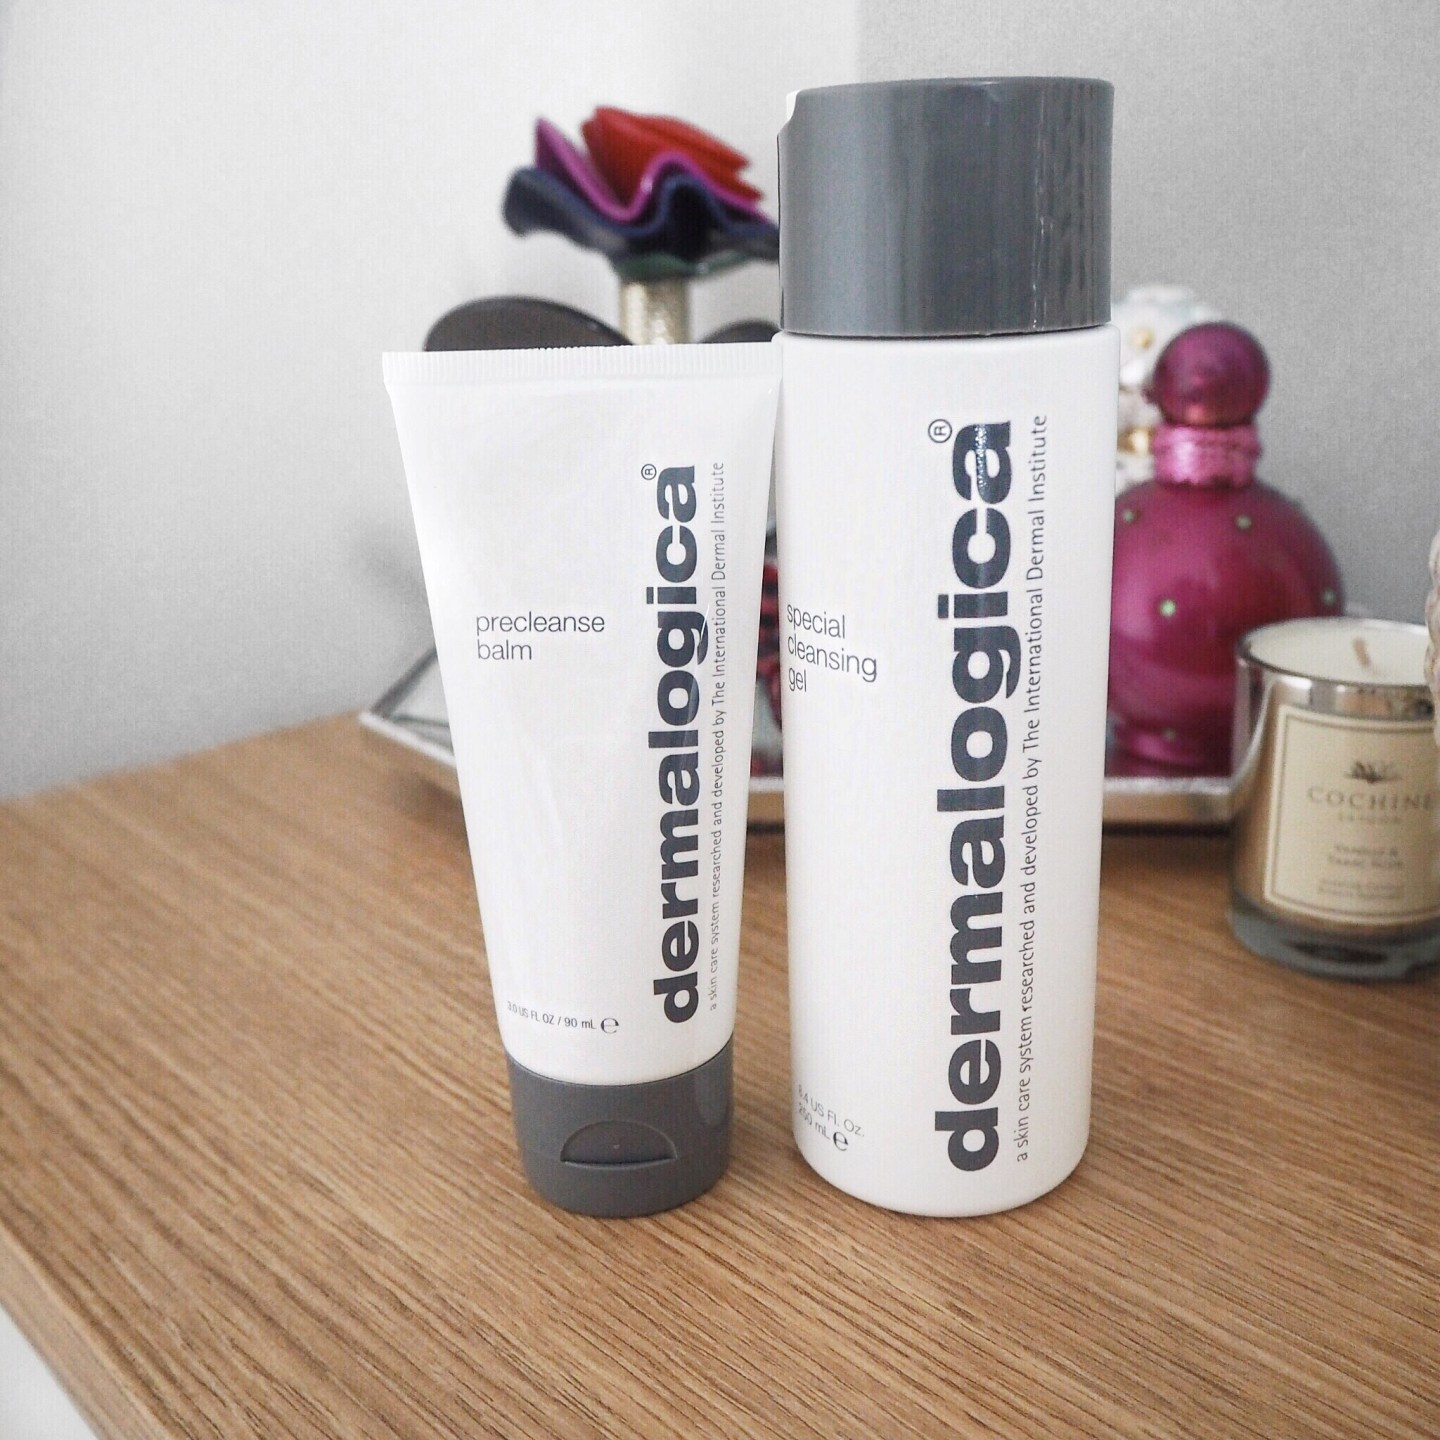 Dermalogica Pre Cleanse Balm + Special Cleansing Gel Review